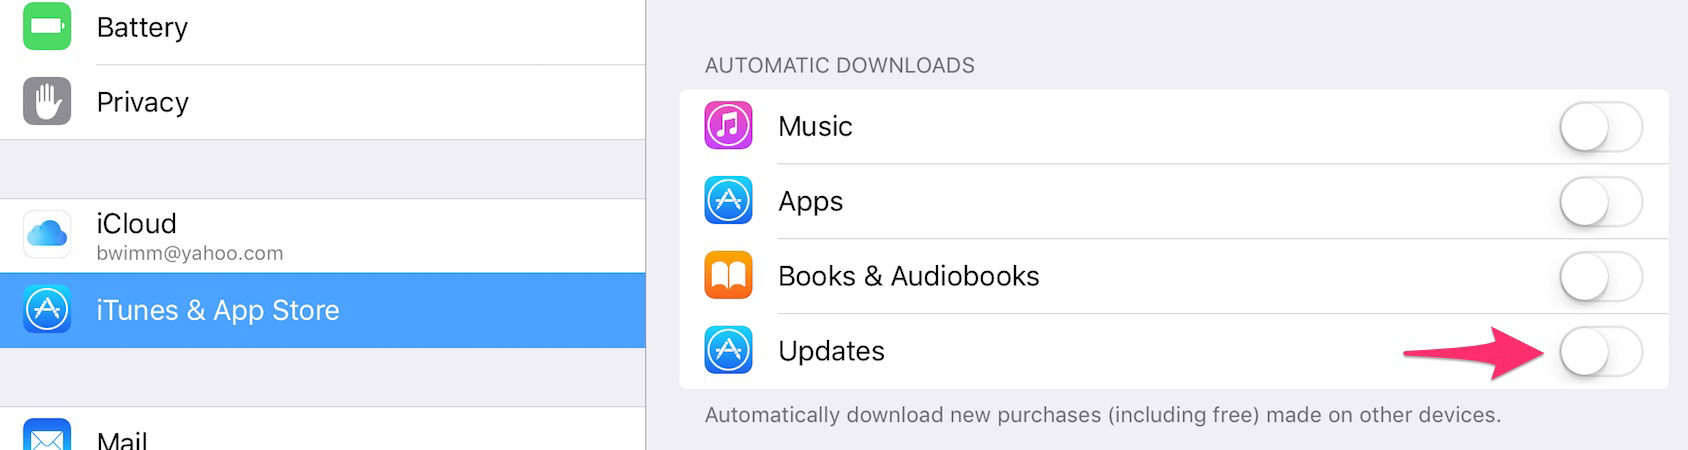 iPad - Turning off Automatic Downloads